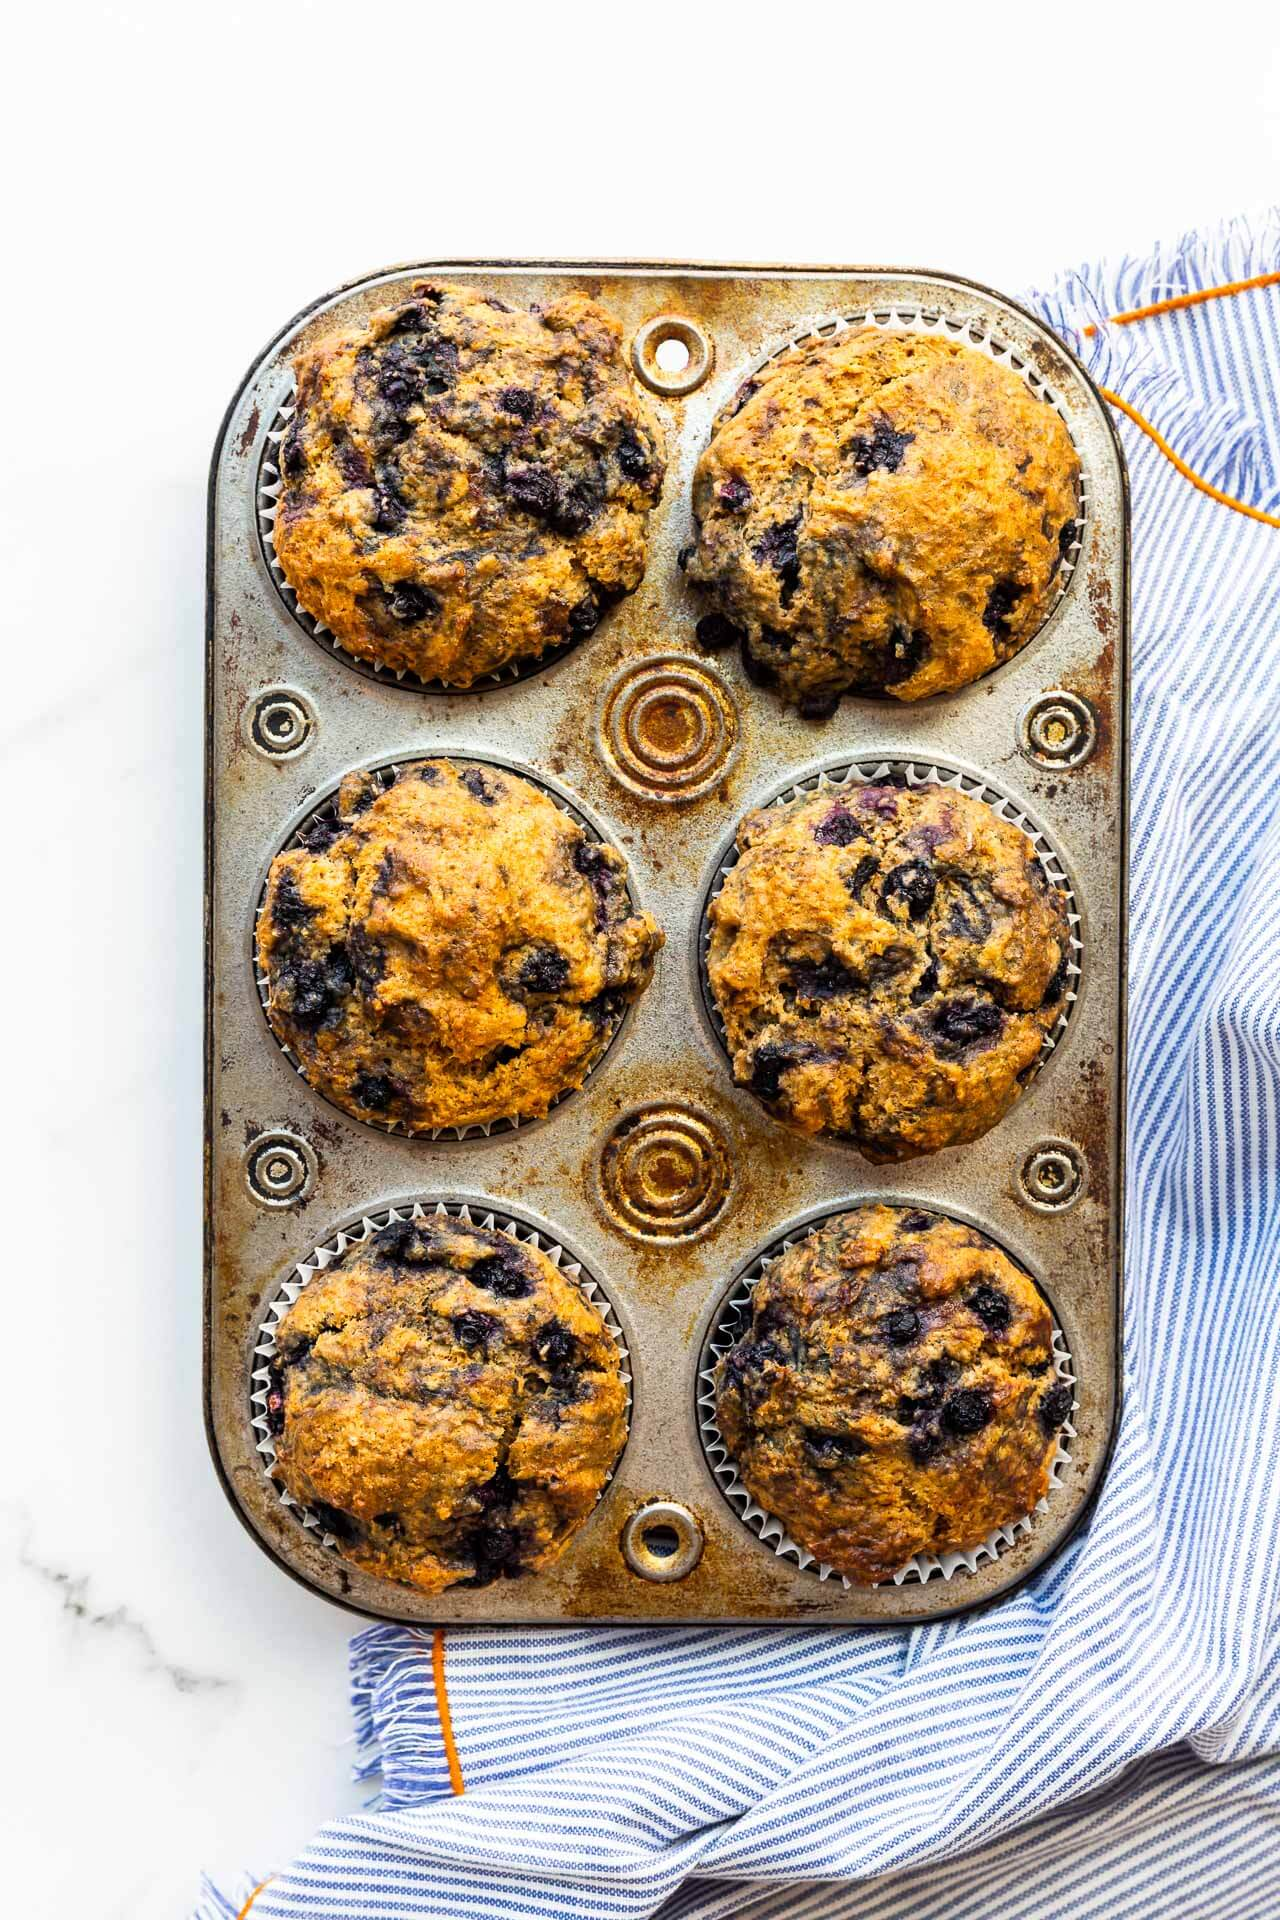 Baked blueberry bran muffins in a vintage muffin pan with a blue and white striped linen with orange edging